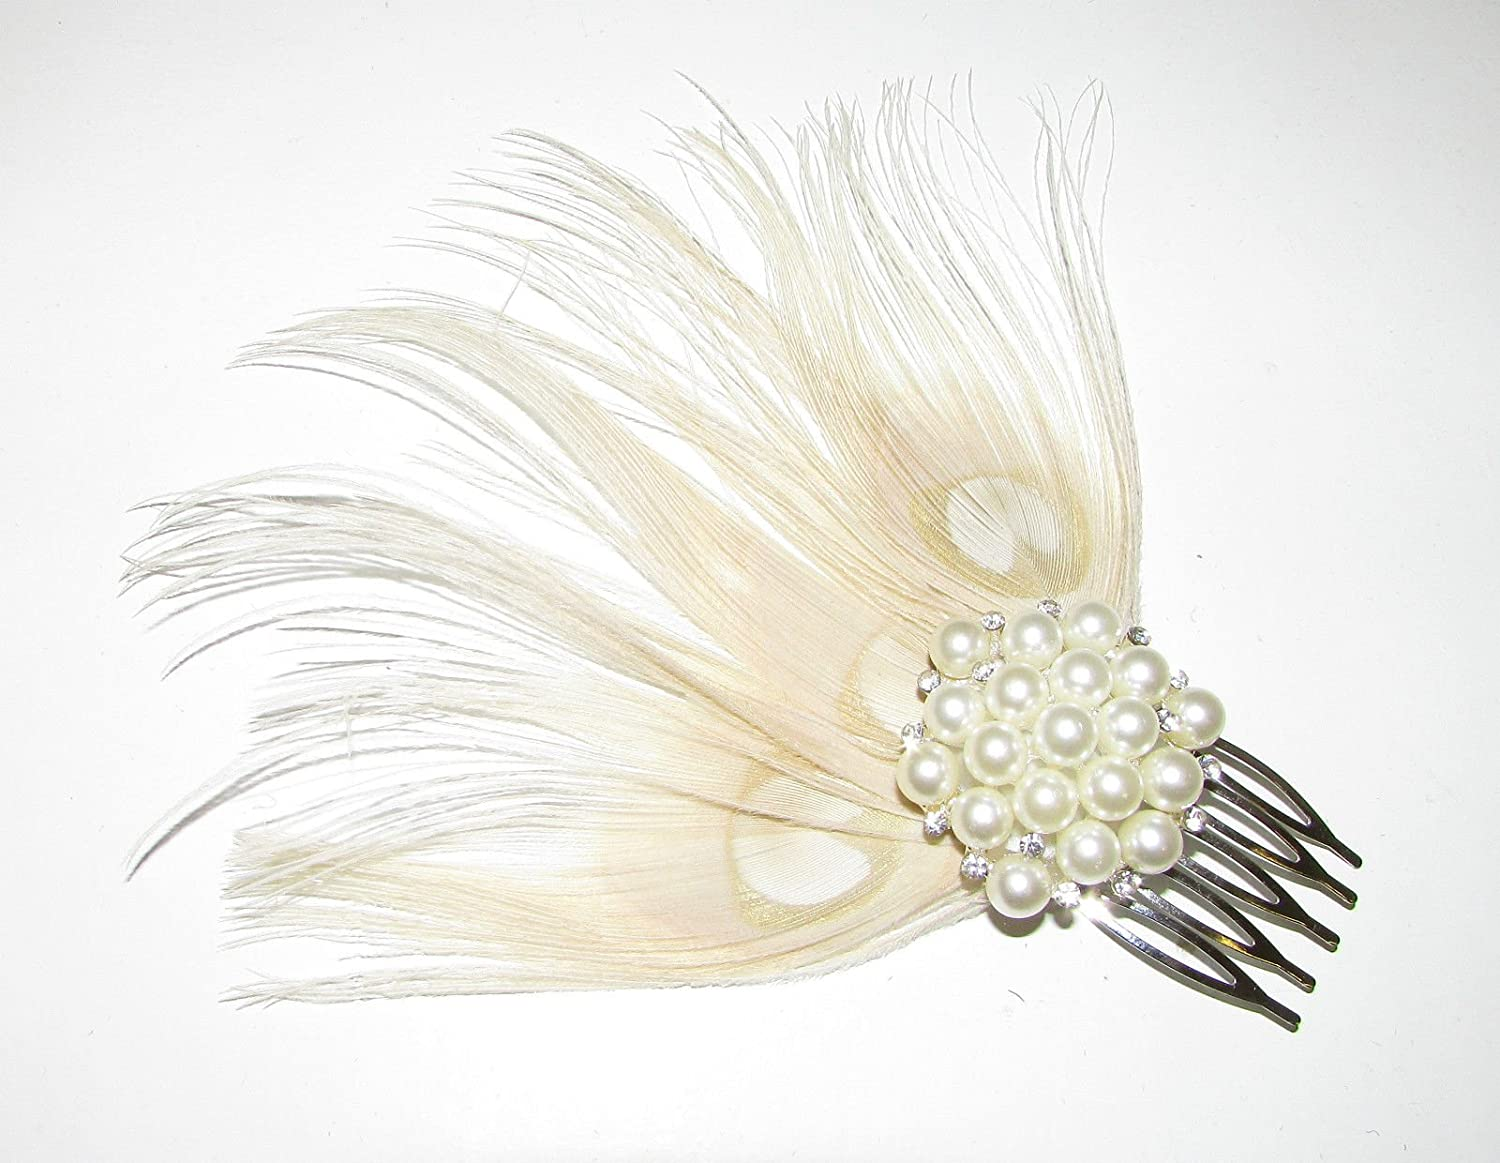 Ivory Cream Silver Pearl Peacock Feather Hair Comb Fascinator 1920s Bridal A92 *EXCLUSIVELY SOLD BY STARCROSSED BEAUTY*